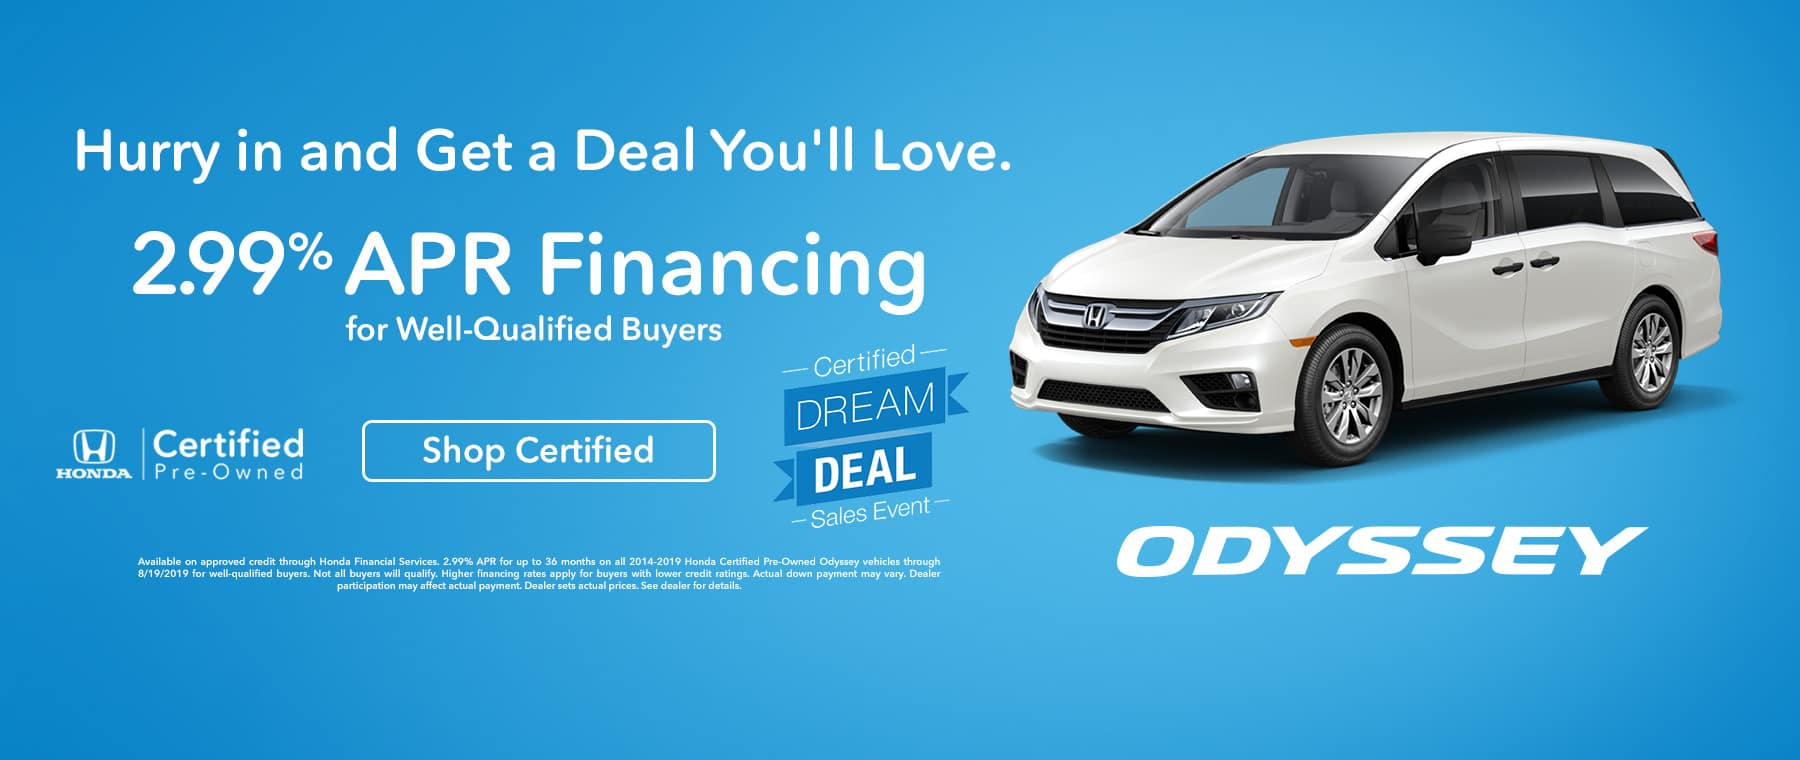 Honda Financial Services Payment >> Paragon Honda New Honda And Used Car Dealer In Woodside Ny